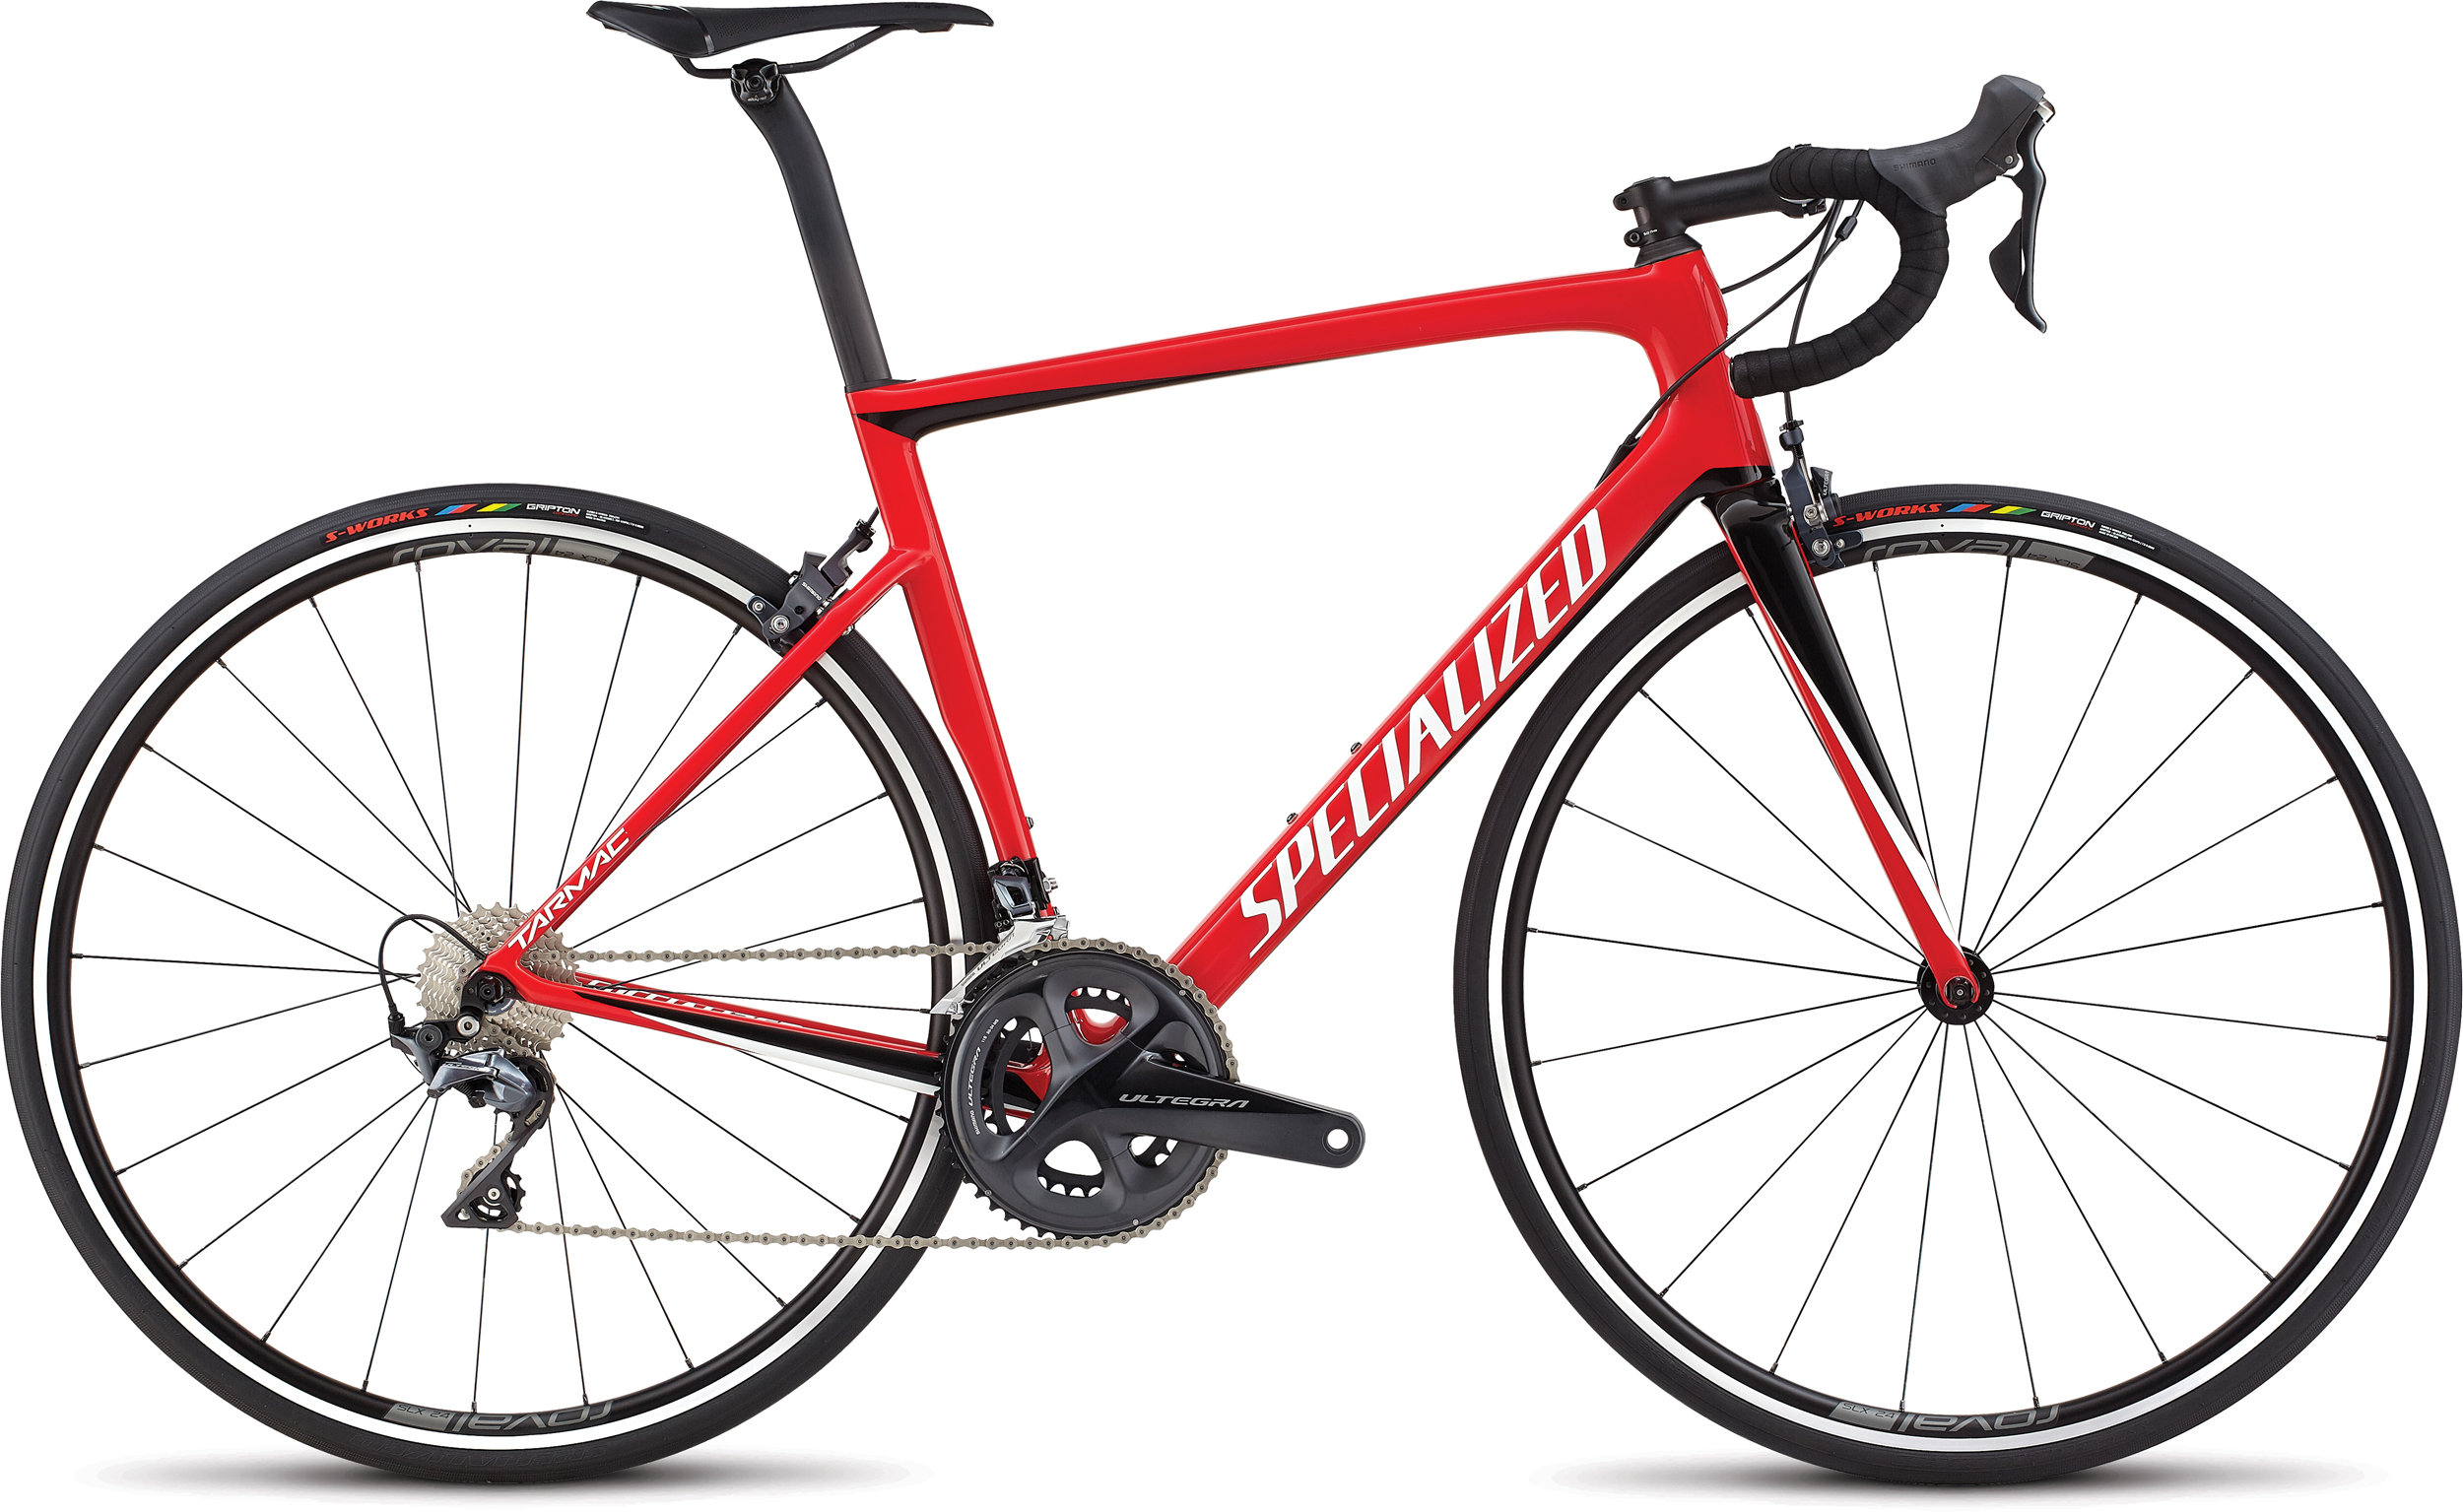 Specialized Men´s Tarmac SL6 Expert Flo Red/Metallic White Silver/Tarmac Black 49 - Randen Bike GmbH